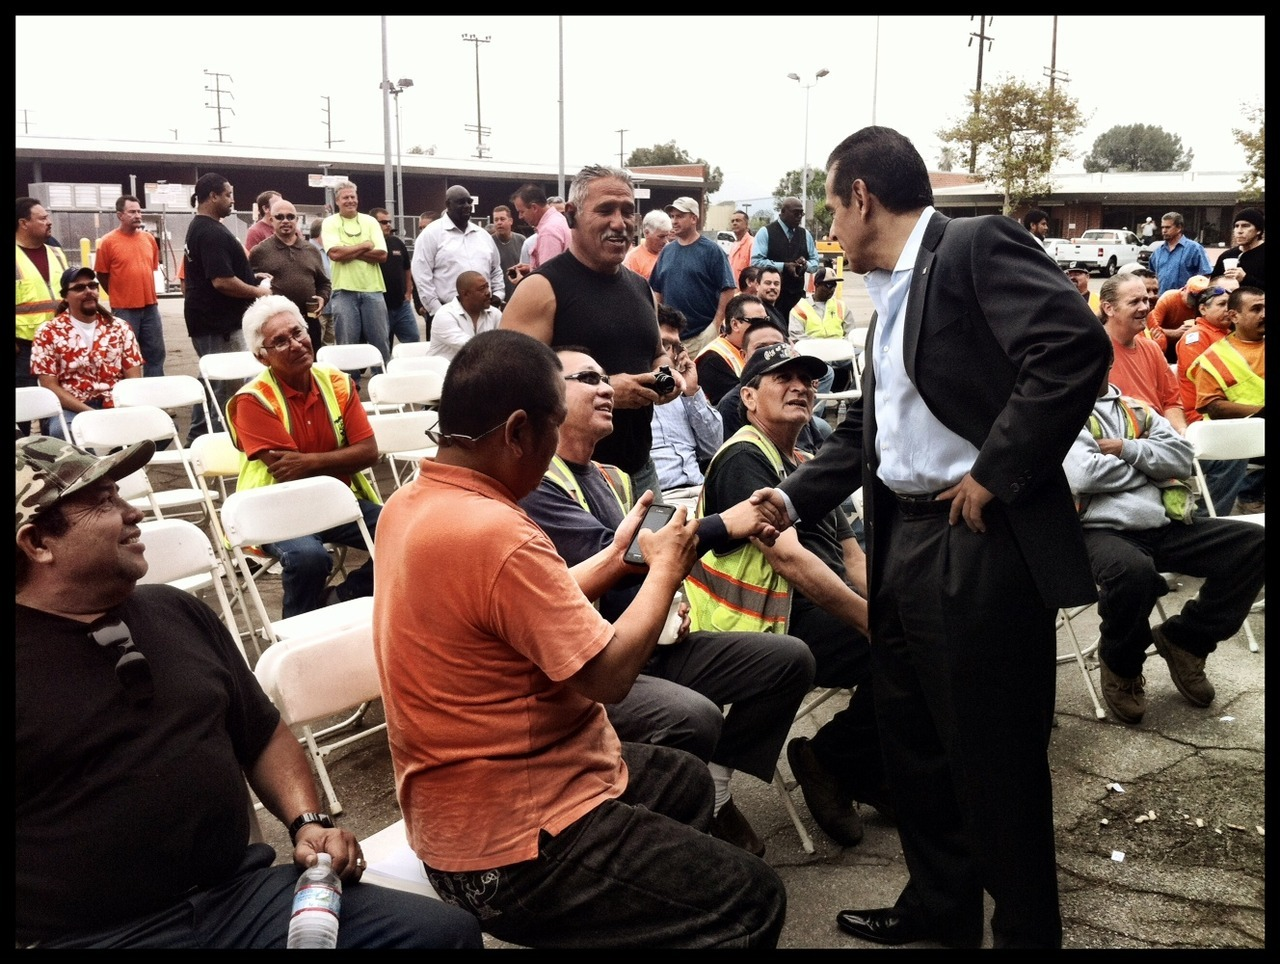 Mayor Villaraigosa joins the hard working men and women of the North Hollywood Bureau of Street Services. Last year we set a city record, paving or preserving 747 miles of LA roads! But there's more work to be done. Need a pothole filled in your community? You can report it here —> http://bit.ly/TXL1T6